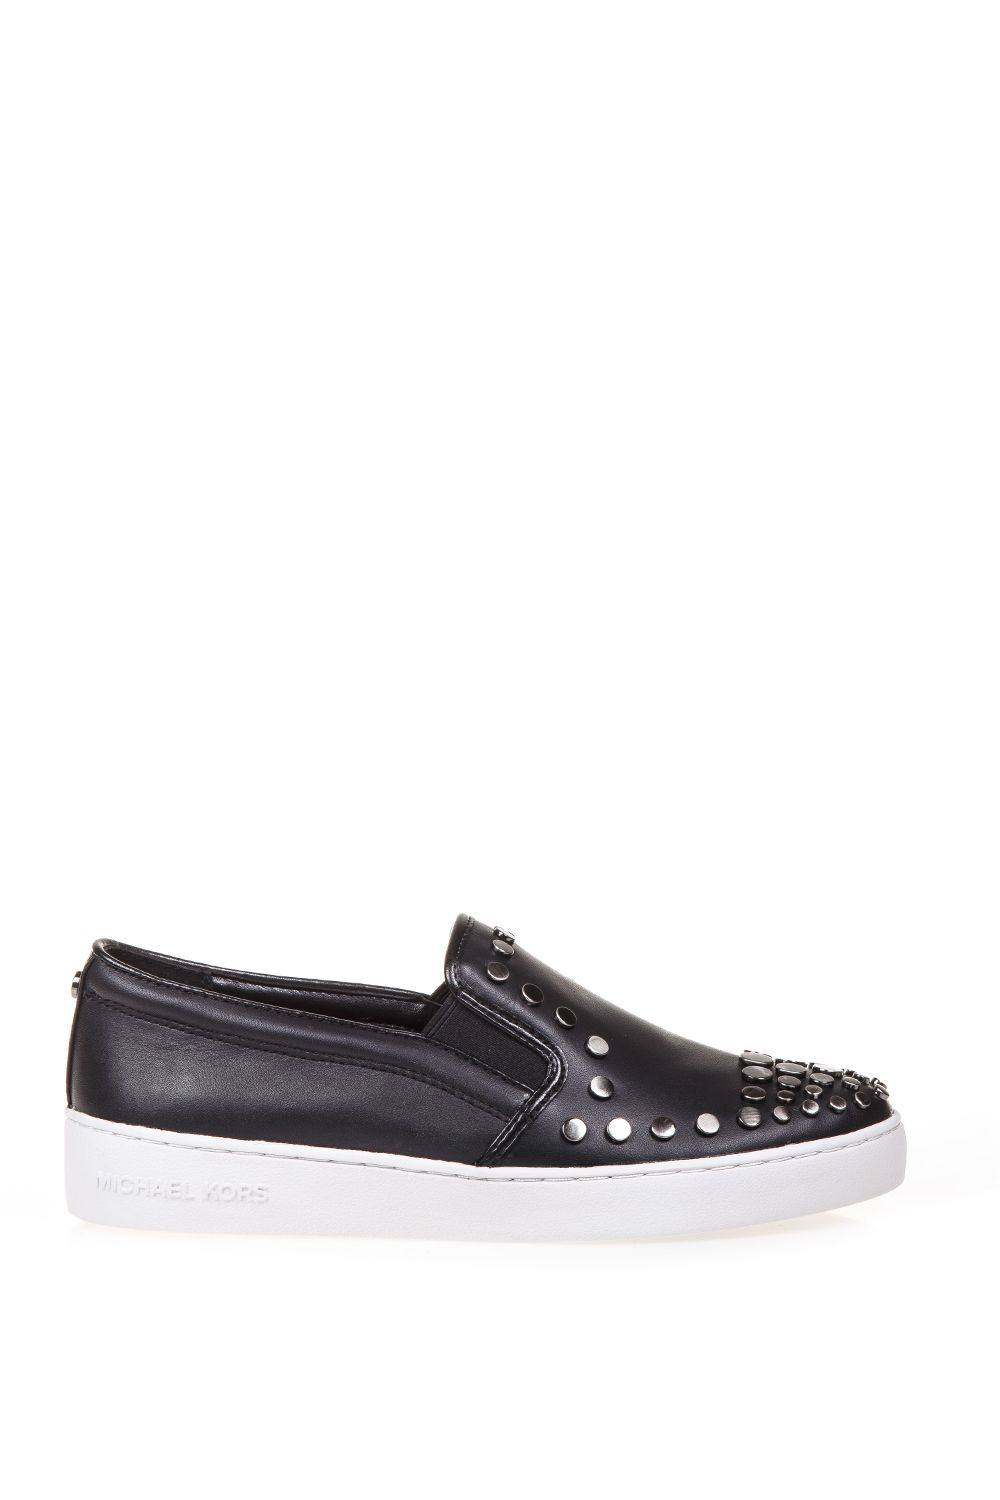 MICHAEL Michael Kors Studded Leather Slip-on Sneakers